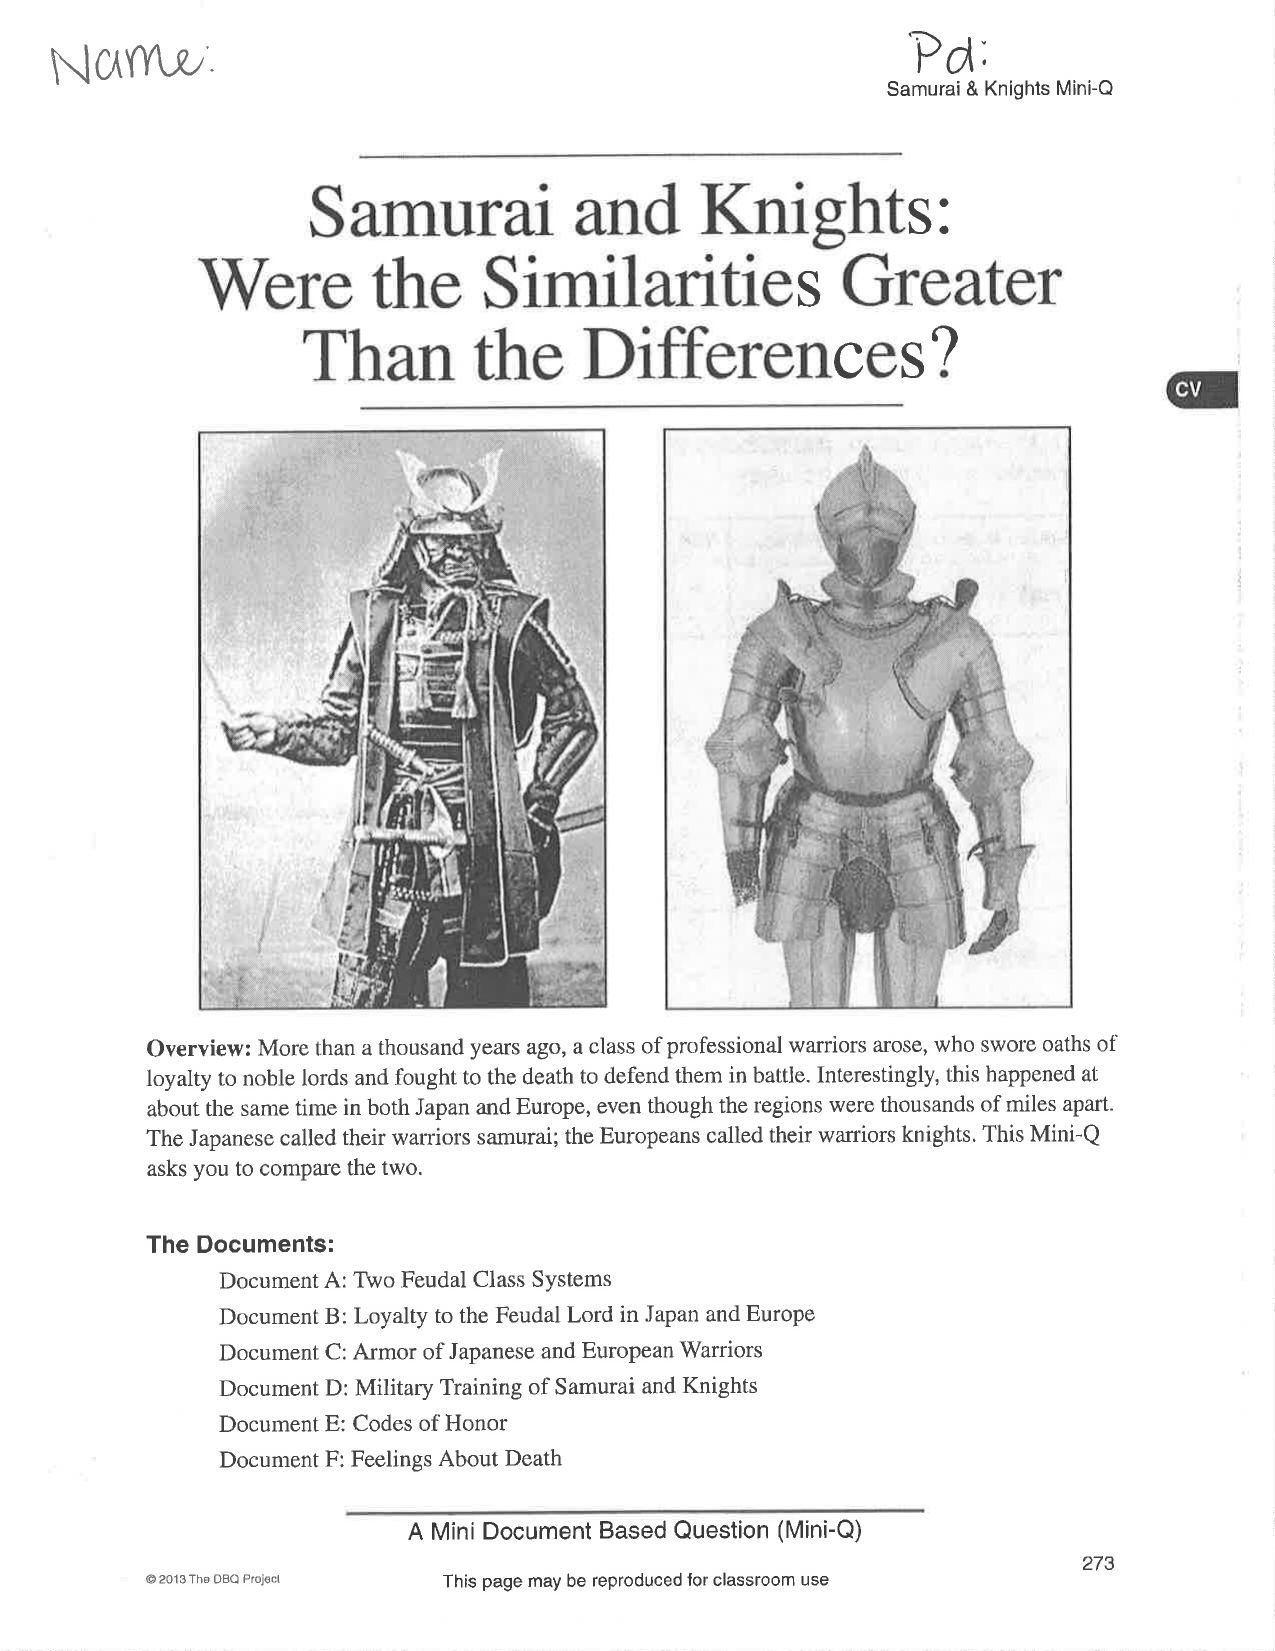 samurai and knights were the similarities greater than the differences dbq essay